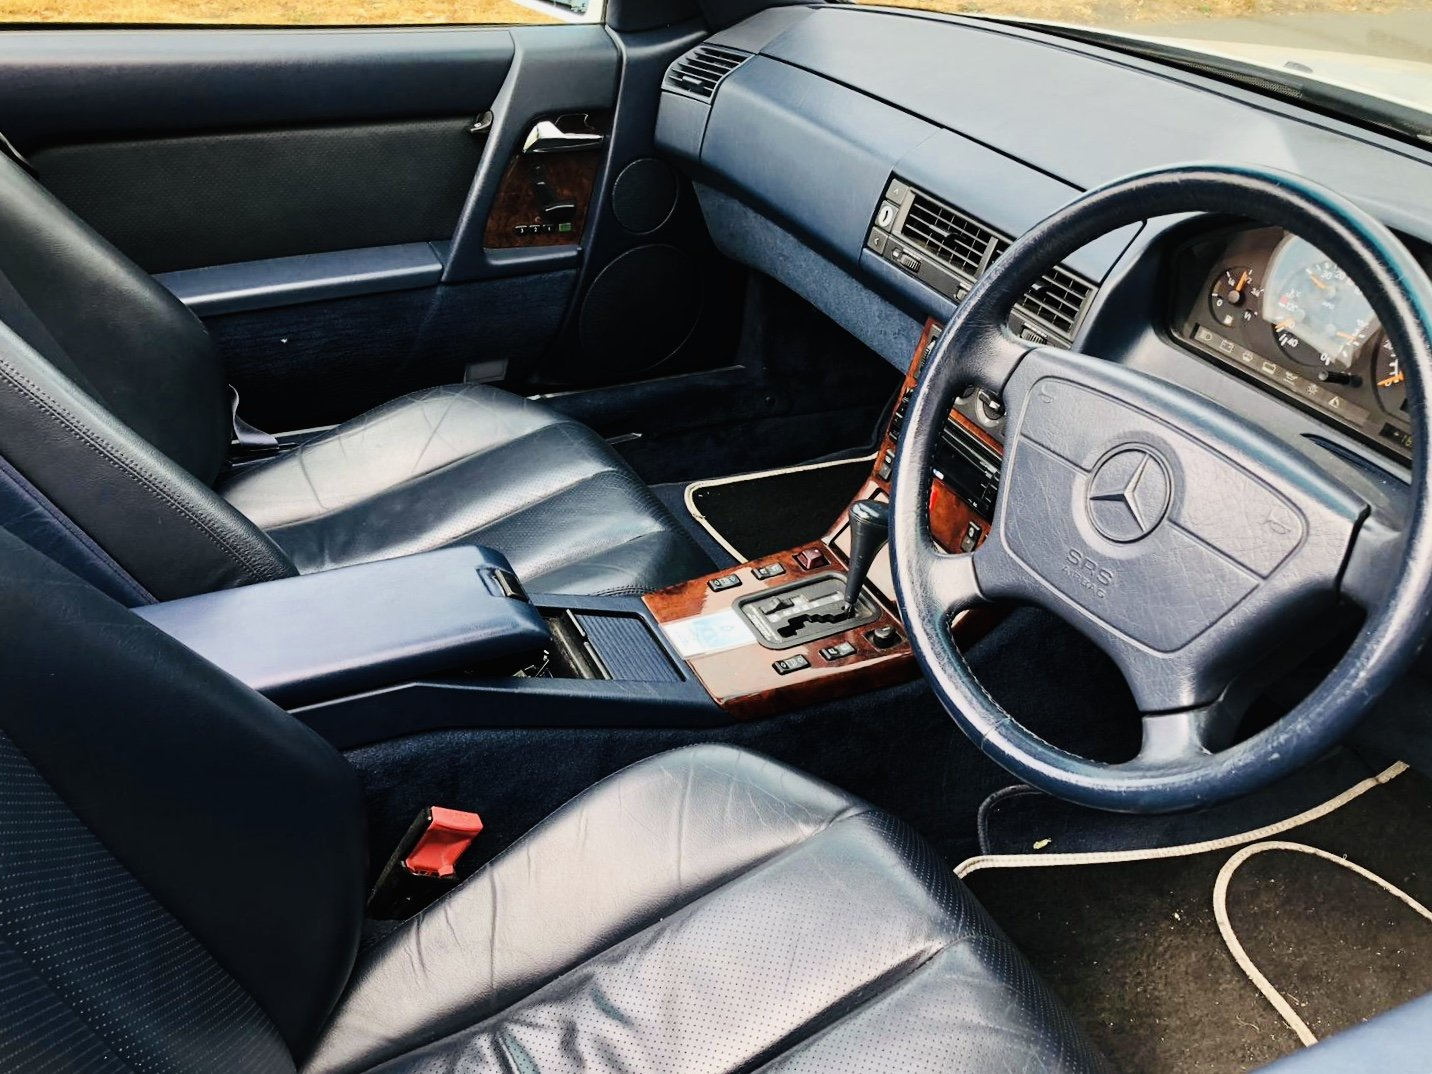 1992 Mercedes SL 500 Lovely White Convertible For Sale (picture 4 of 6)